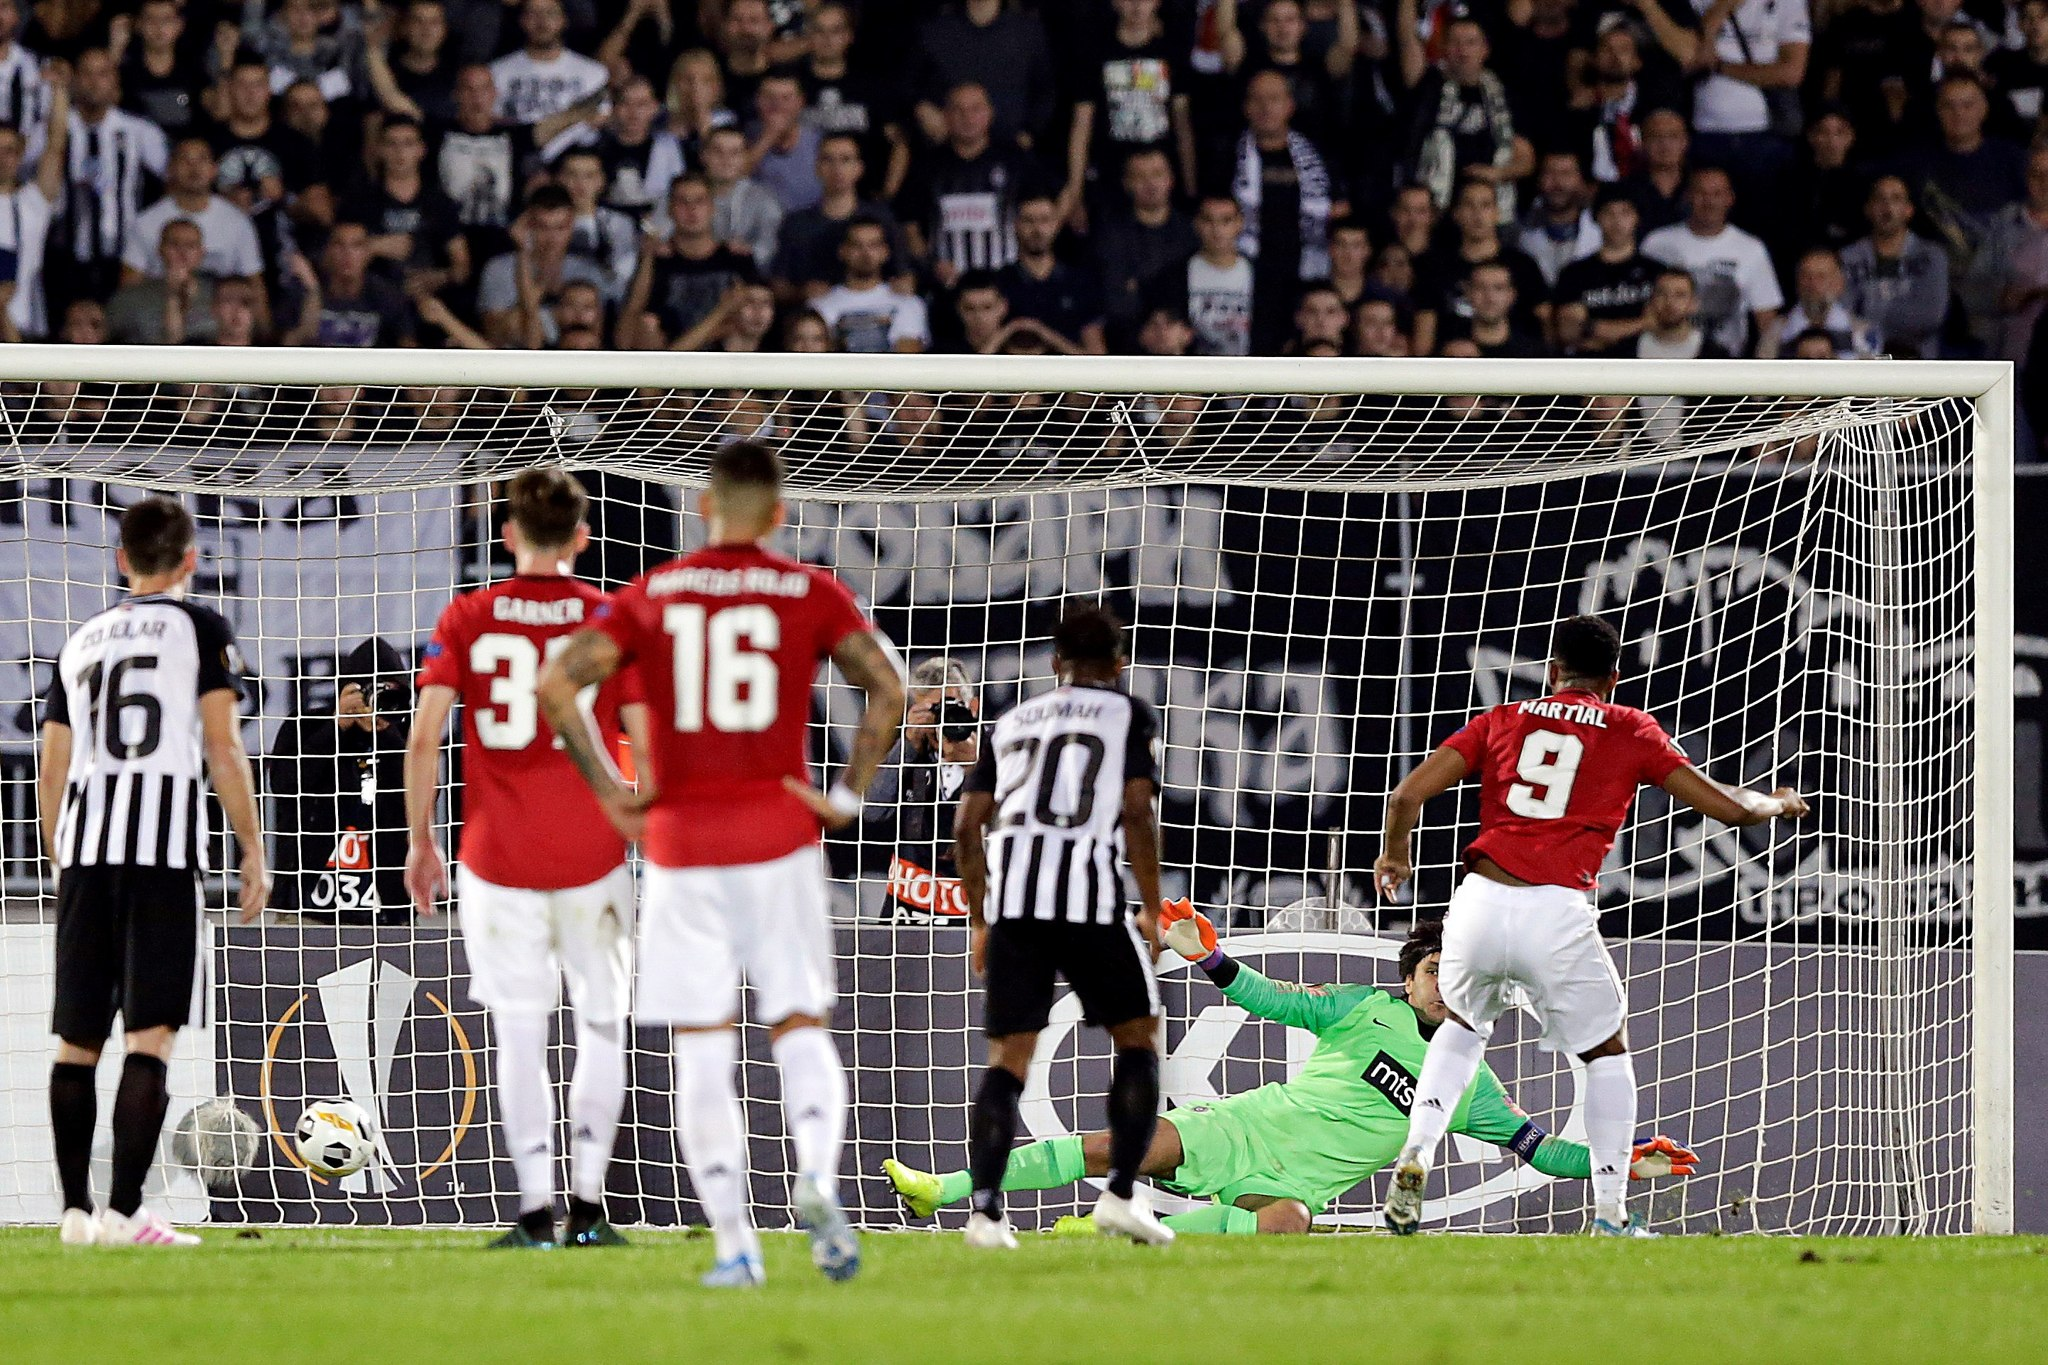 Belgrade (Serbia), 24/10/2019.- Manchester <HIT>United</HIT>s Anthony Martial (R) scores on penalty against Partizans goalkeeper Vladimir Stojkovic during the UEFA Europa League group L soccer match between FK Partizan and Manchester <HIT>United</HIT> in Belgrade, Serbia, 24 October 2019. (Belgrado) EFE/EPA/ANDREJ CUKIC